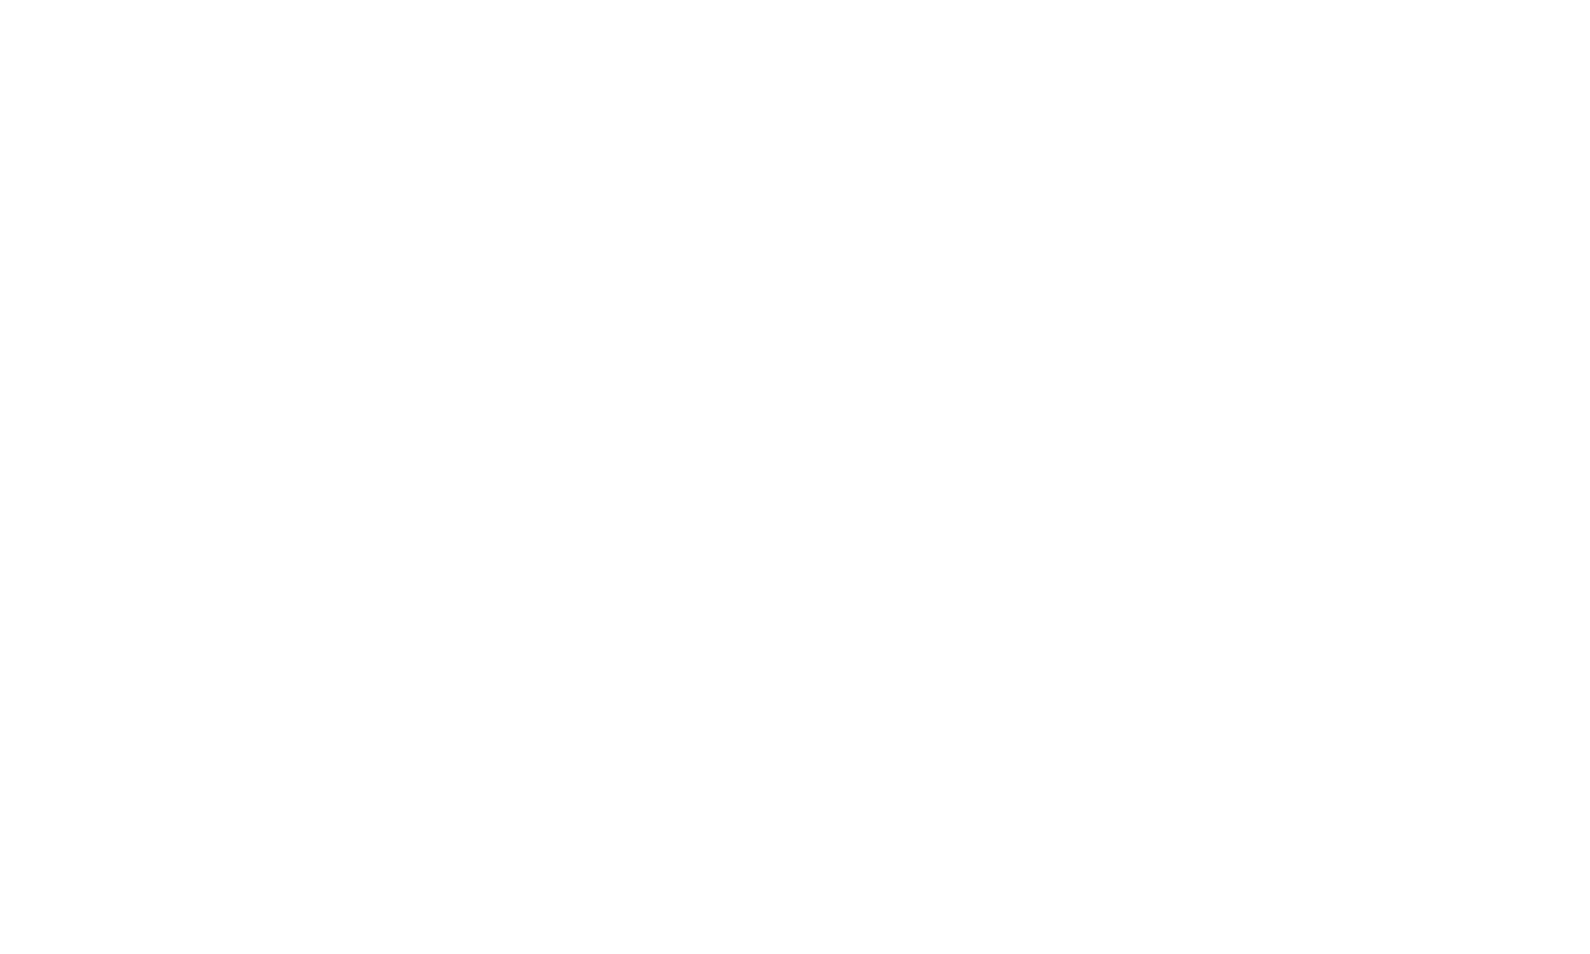 live magazine logo in white